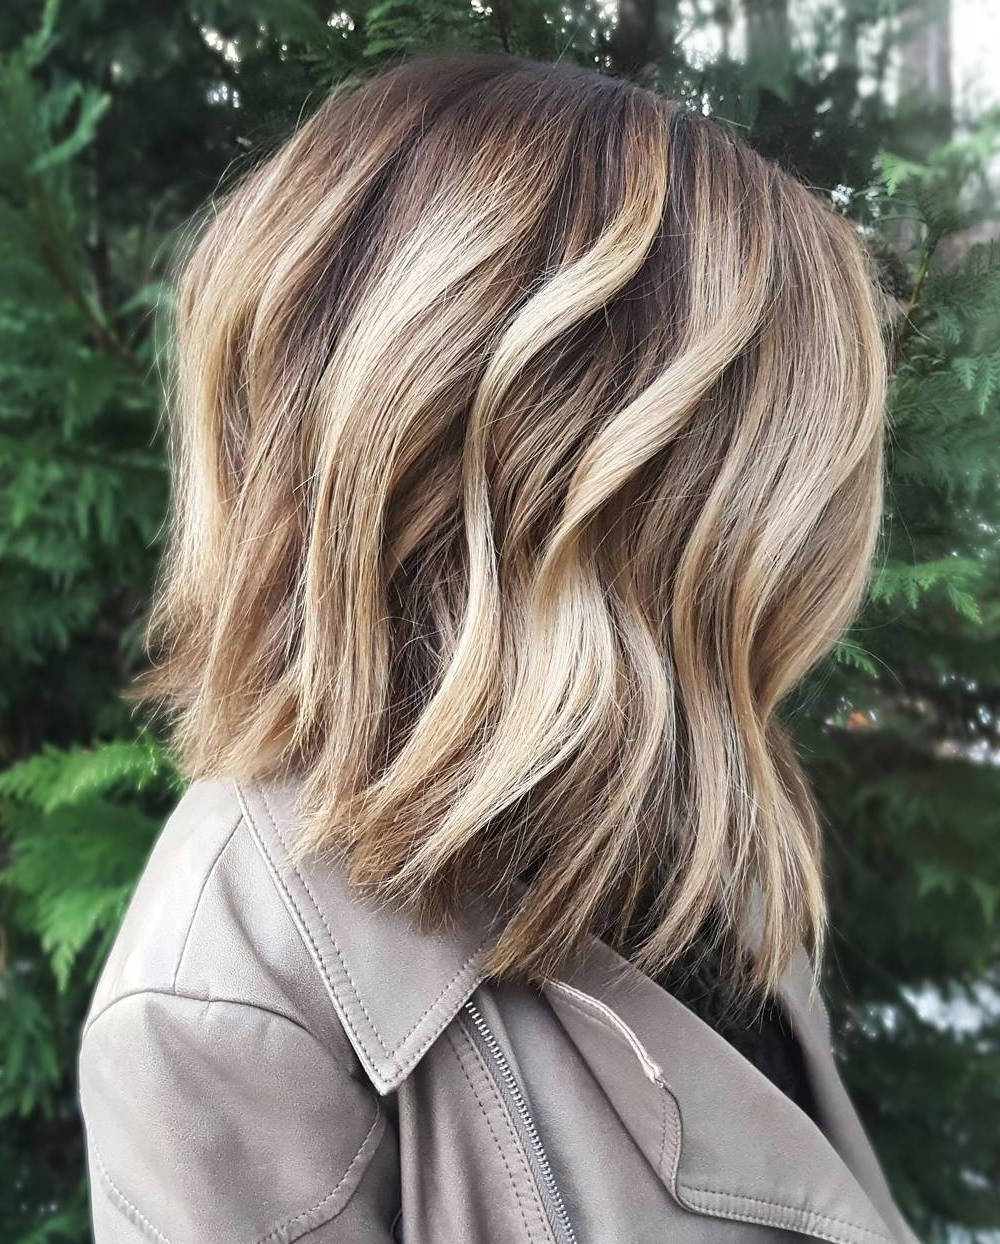 Blonde Hair Color Shades {Best Ideas For 2018} With Angelic Blonde Balayage Bob Hairstyles With Curls (View 15 of 20)